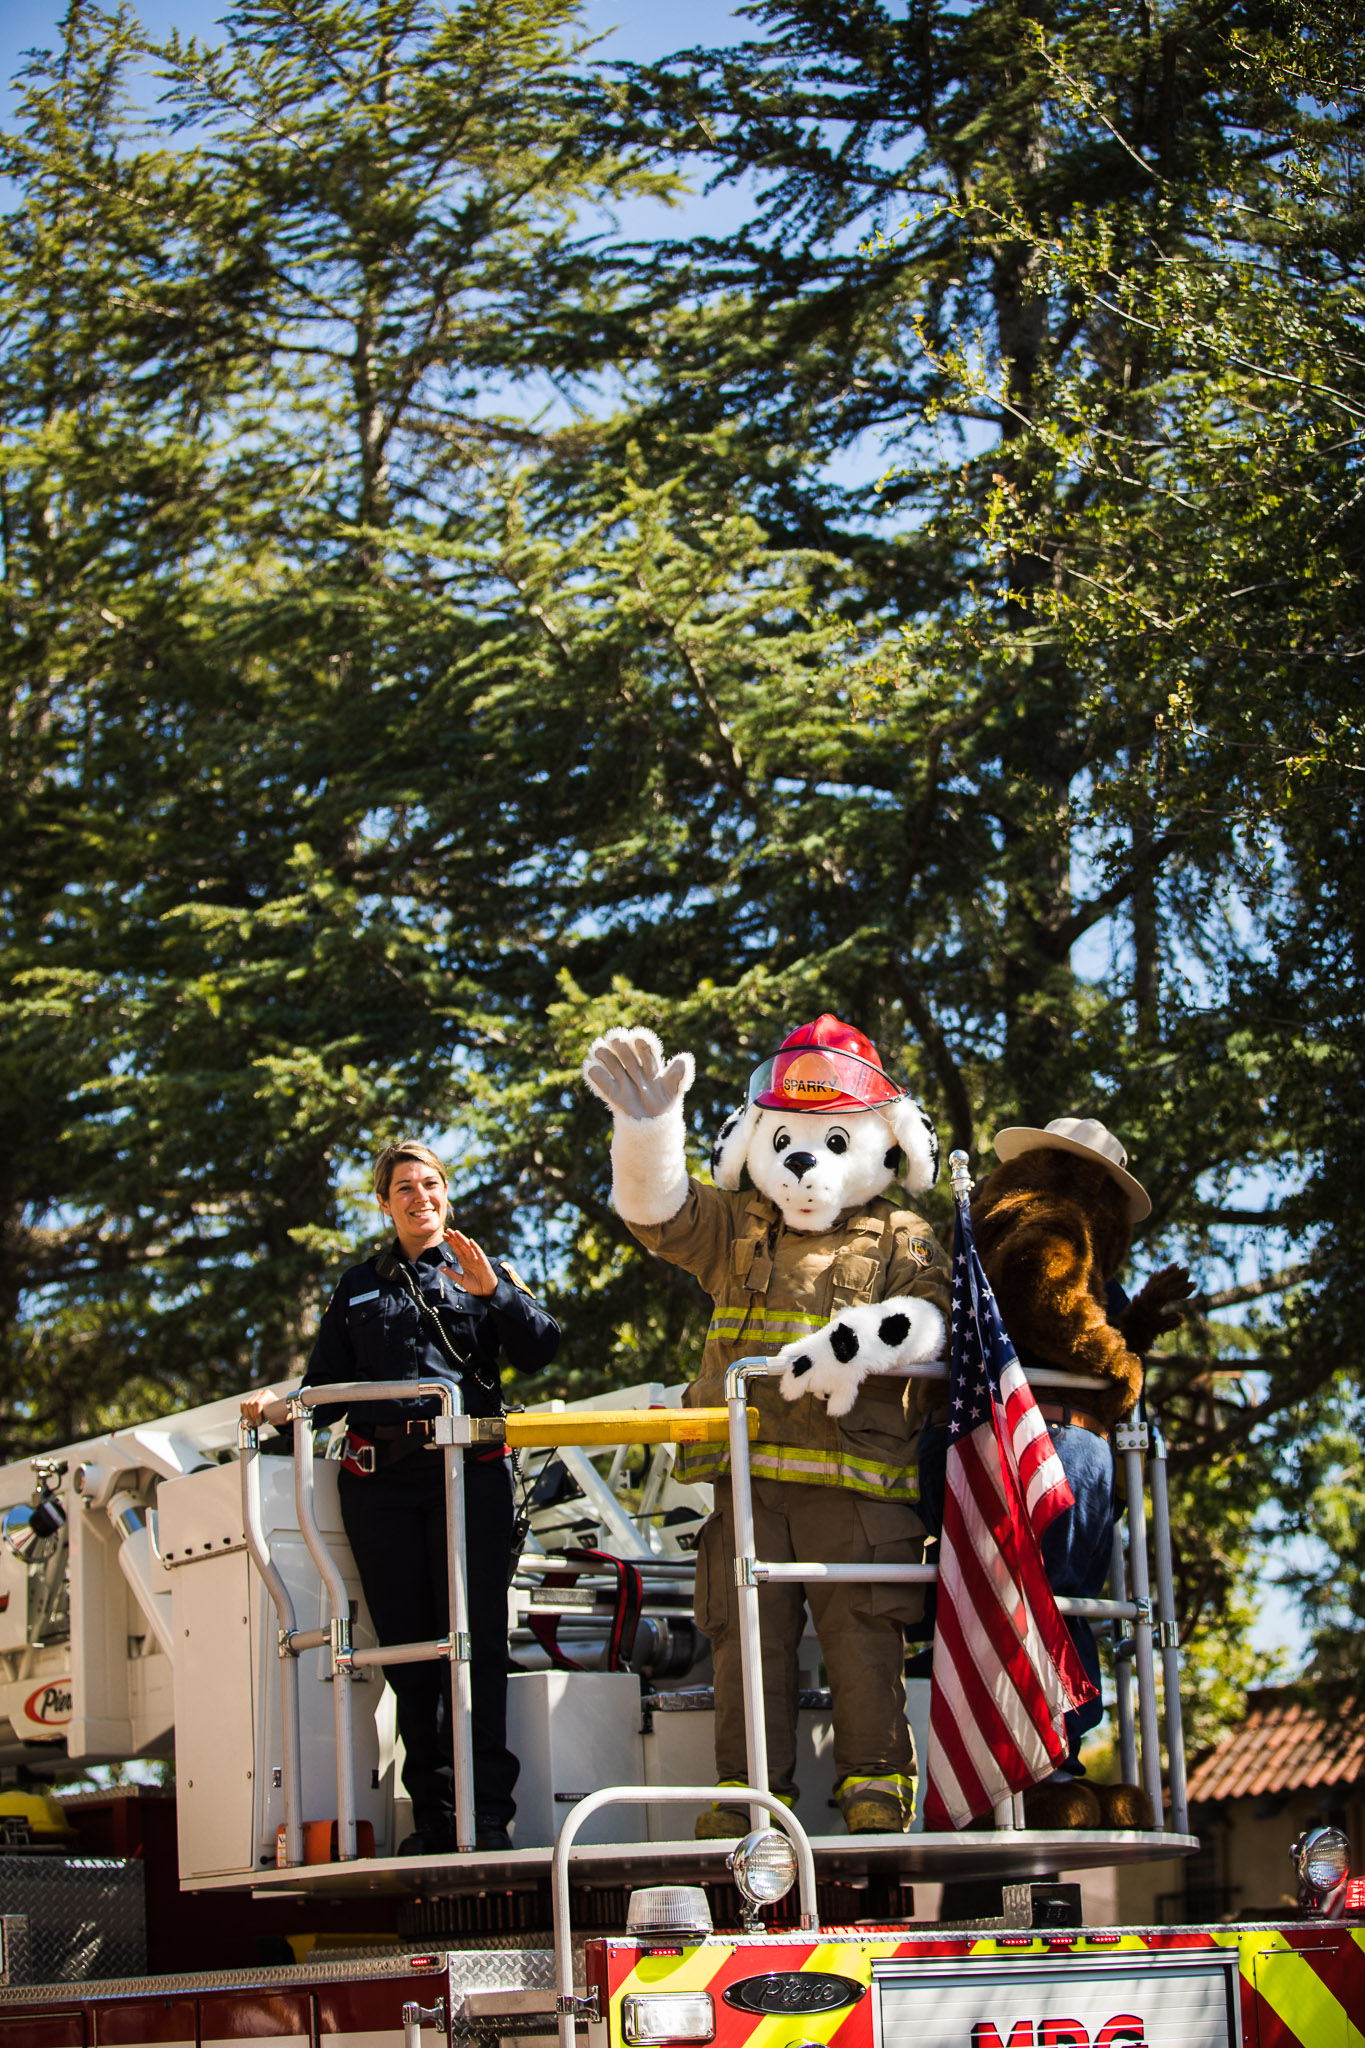 Archer_Inspired_Photography_Morgan_Hill_California_4th_of_july_parade-47.jpg